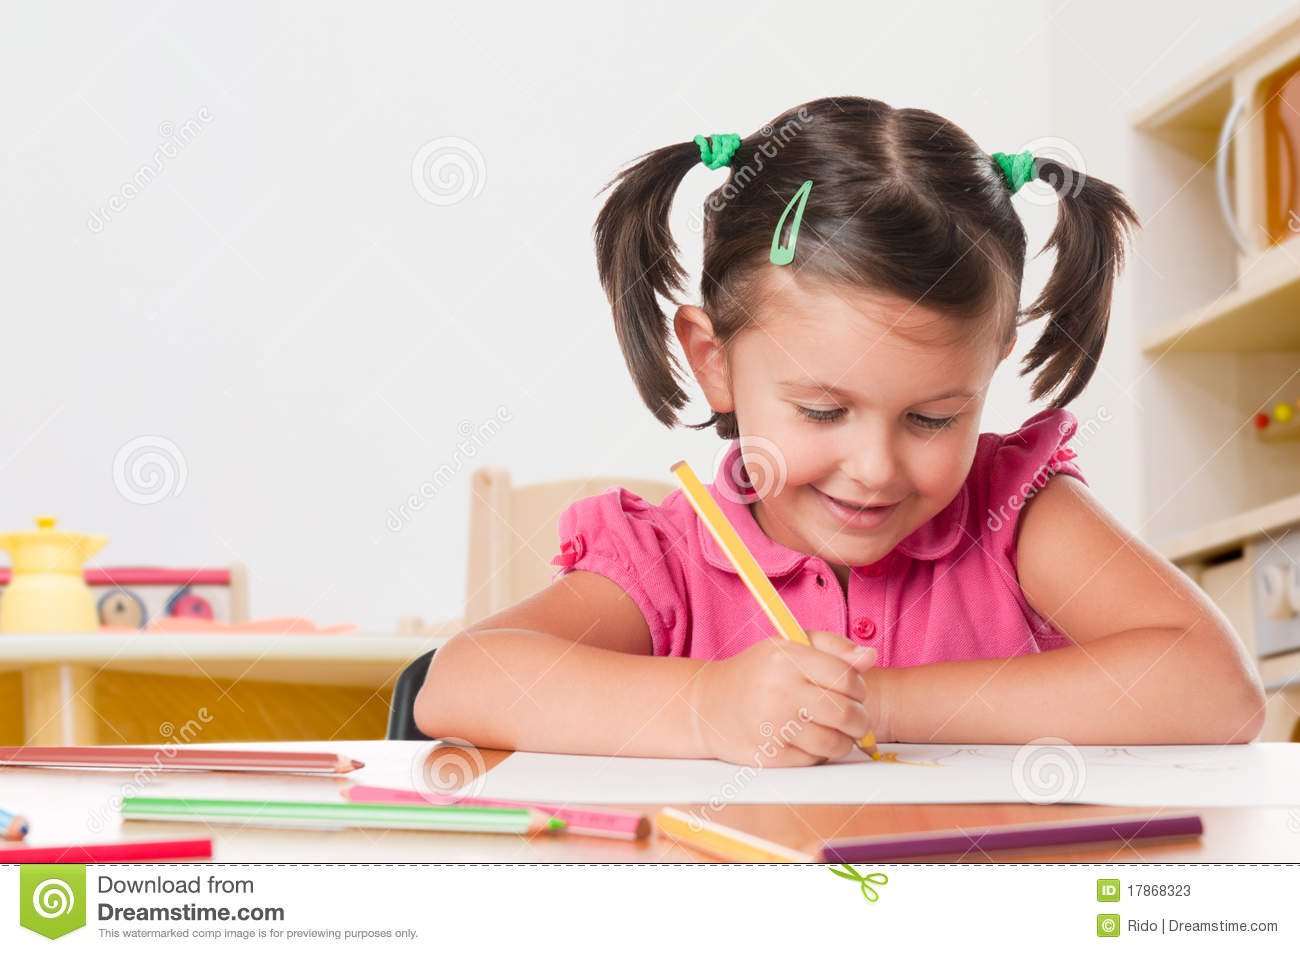 Cunis Spanish Meaning Of Essay